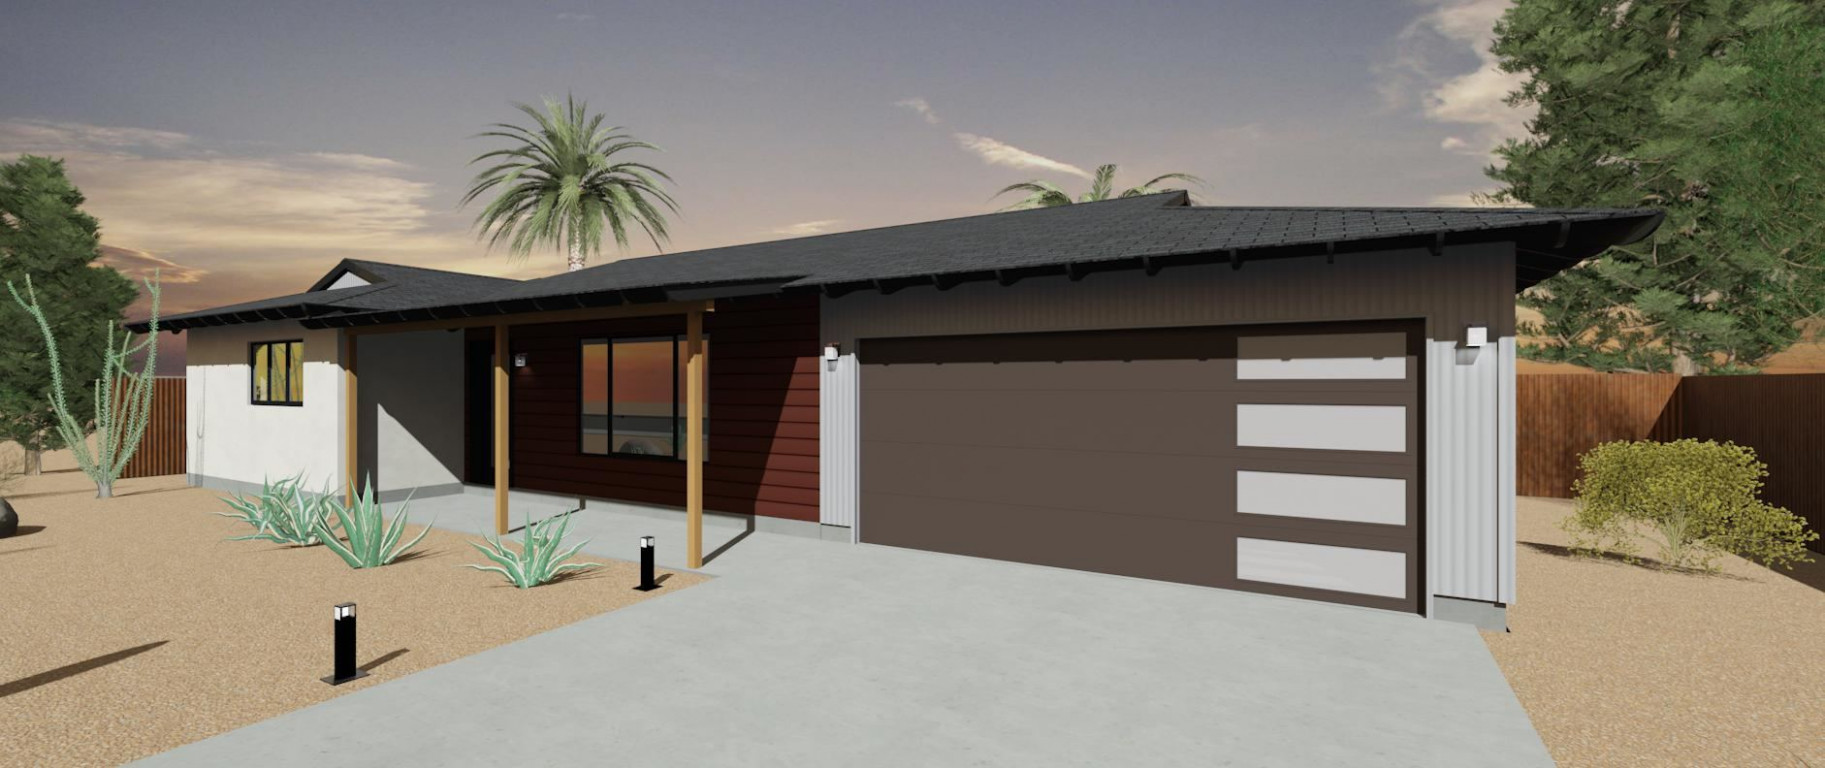 Home Remodeling | Home Additions | Project Construction LLC Cost Convert Carport Garage